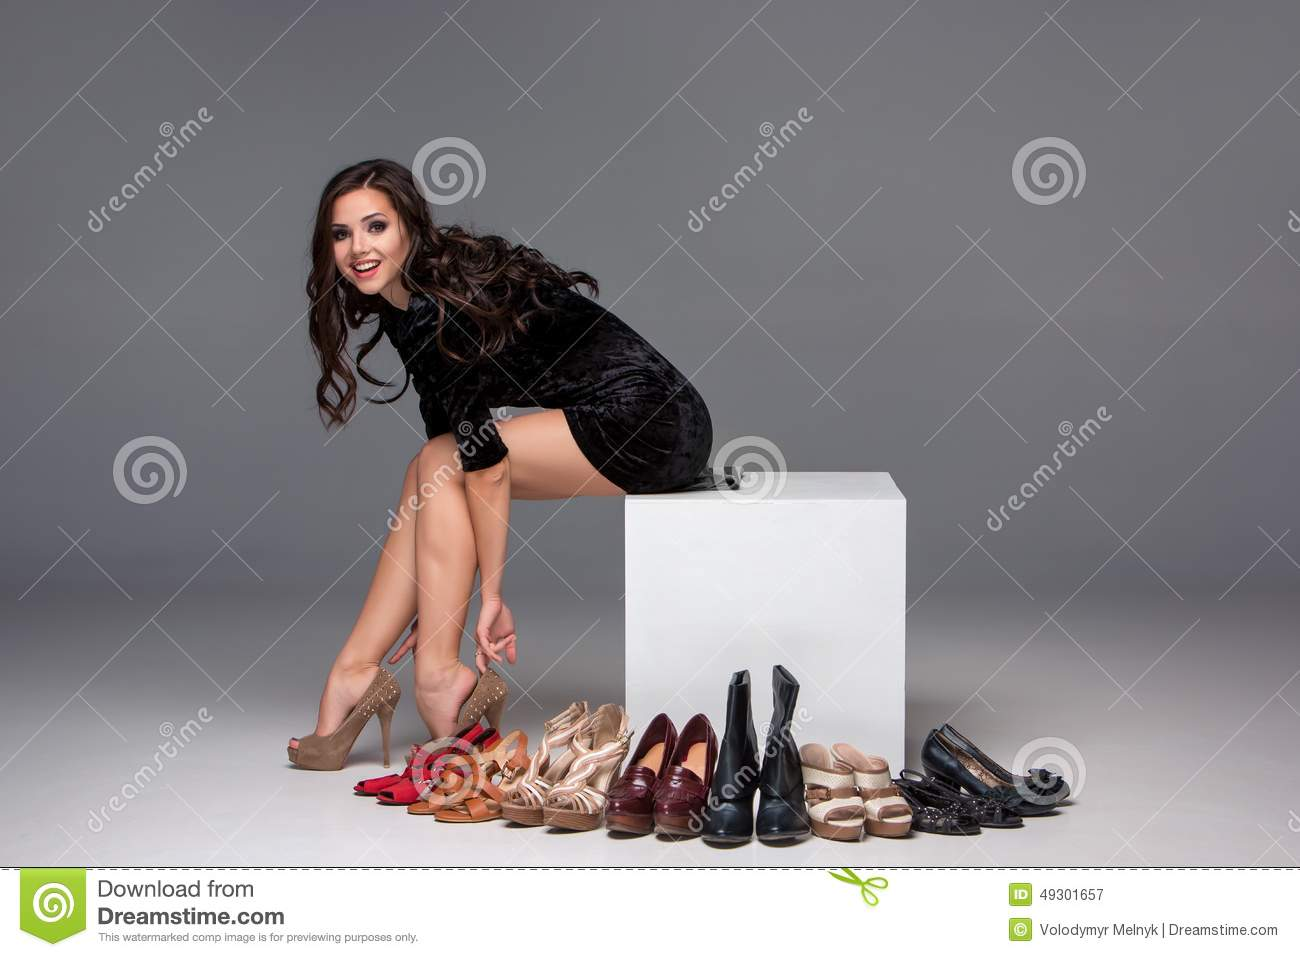 Picture of sitting woman trying on high heeled